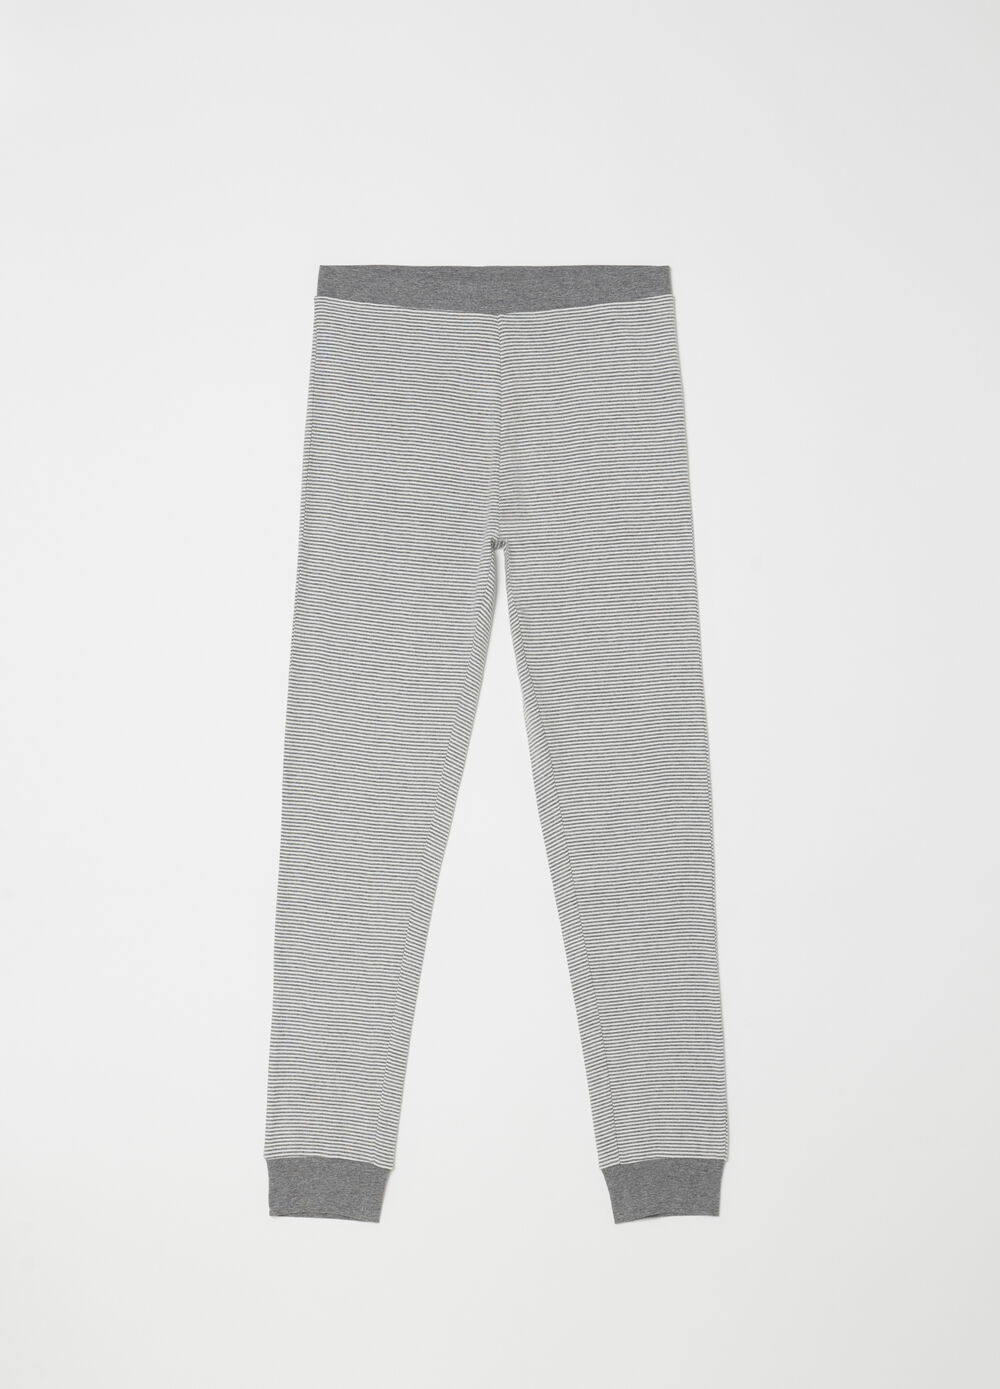 Yarn-dyed warm trousers with striped pattern